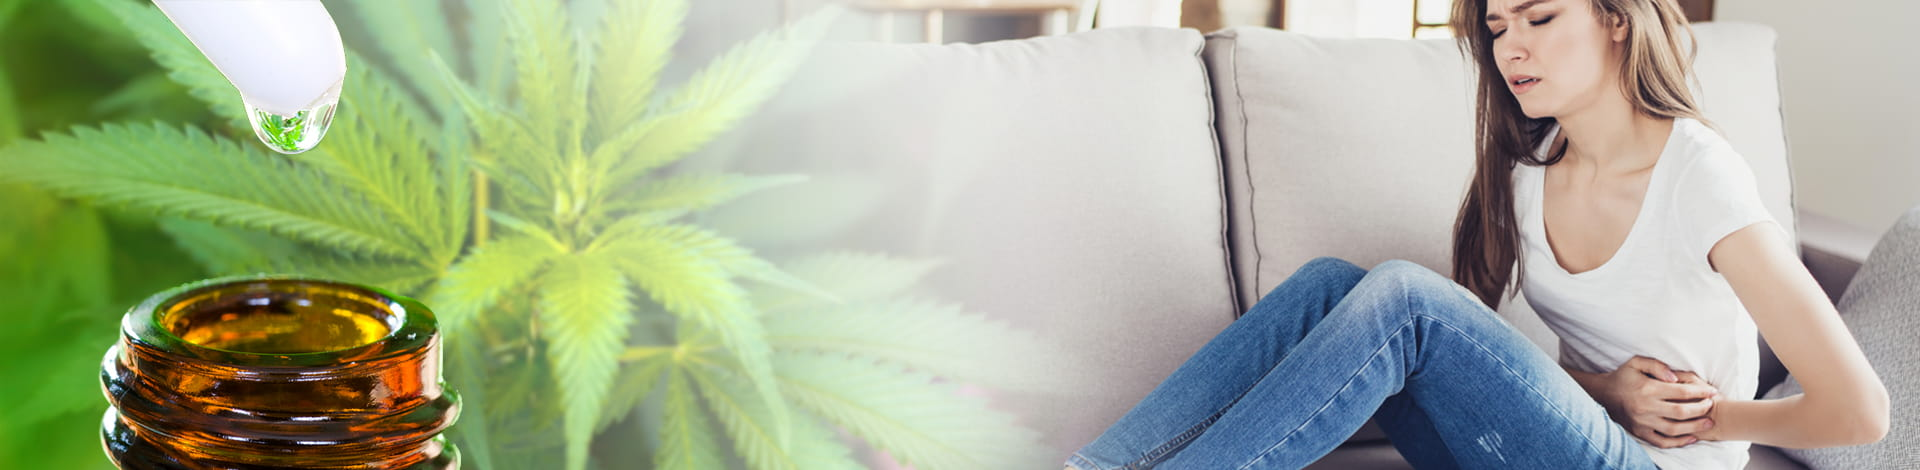 CBD for Period Cramps: Medical Benefits, Studies, and Dosage